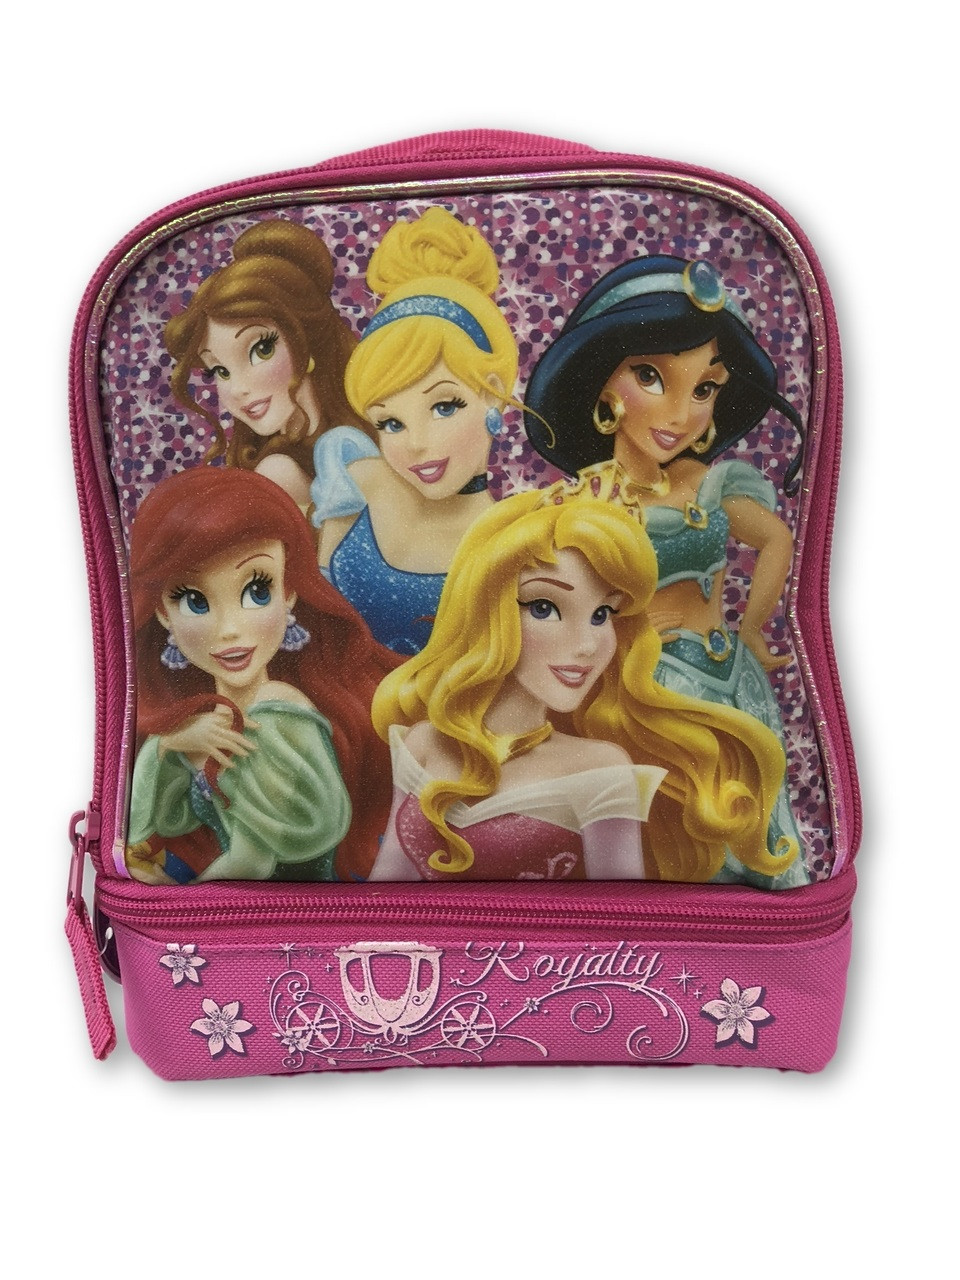 Lunch Box - Princess - Insulated - Dual Zipper - Hot Pink - Royalty